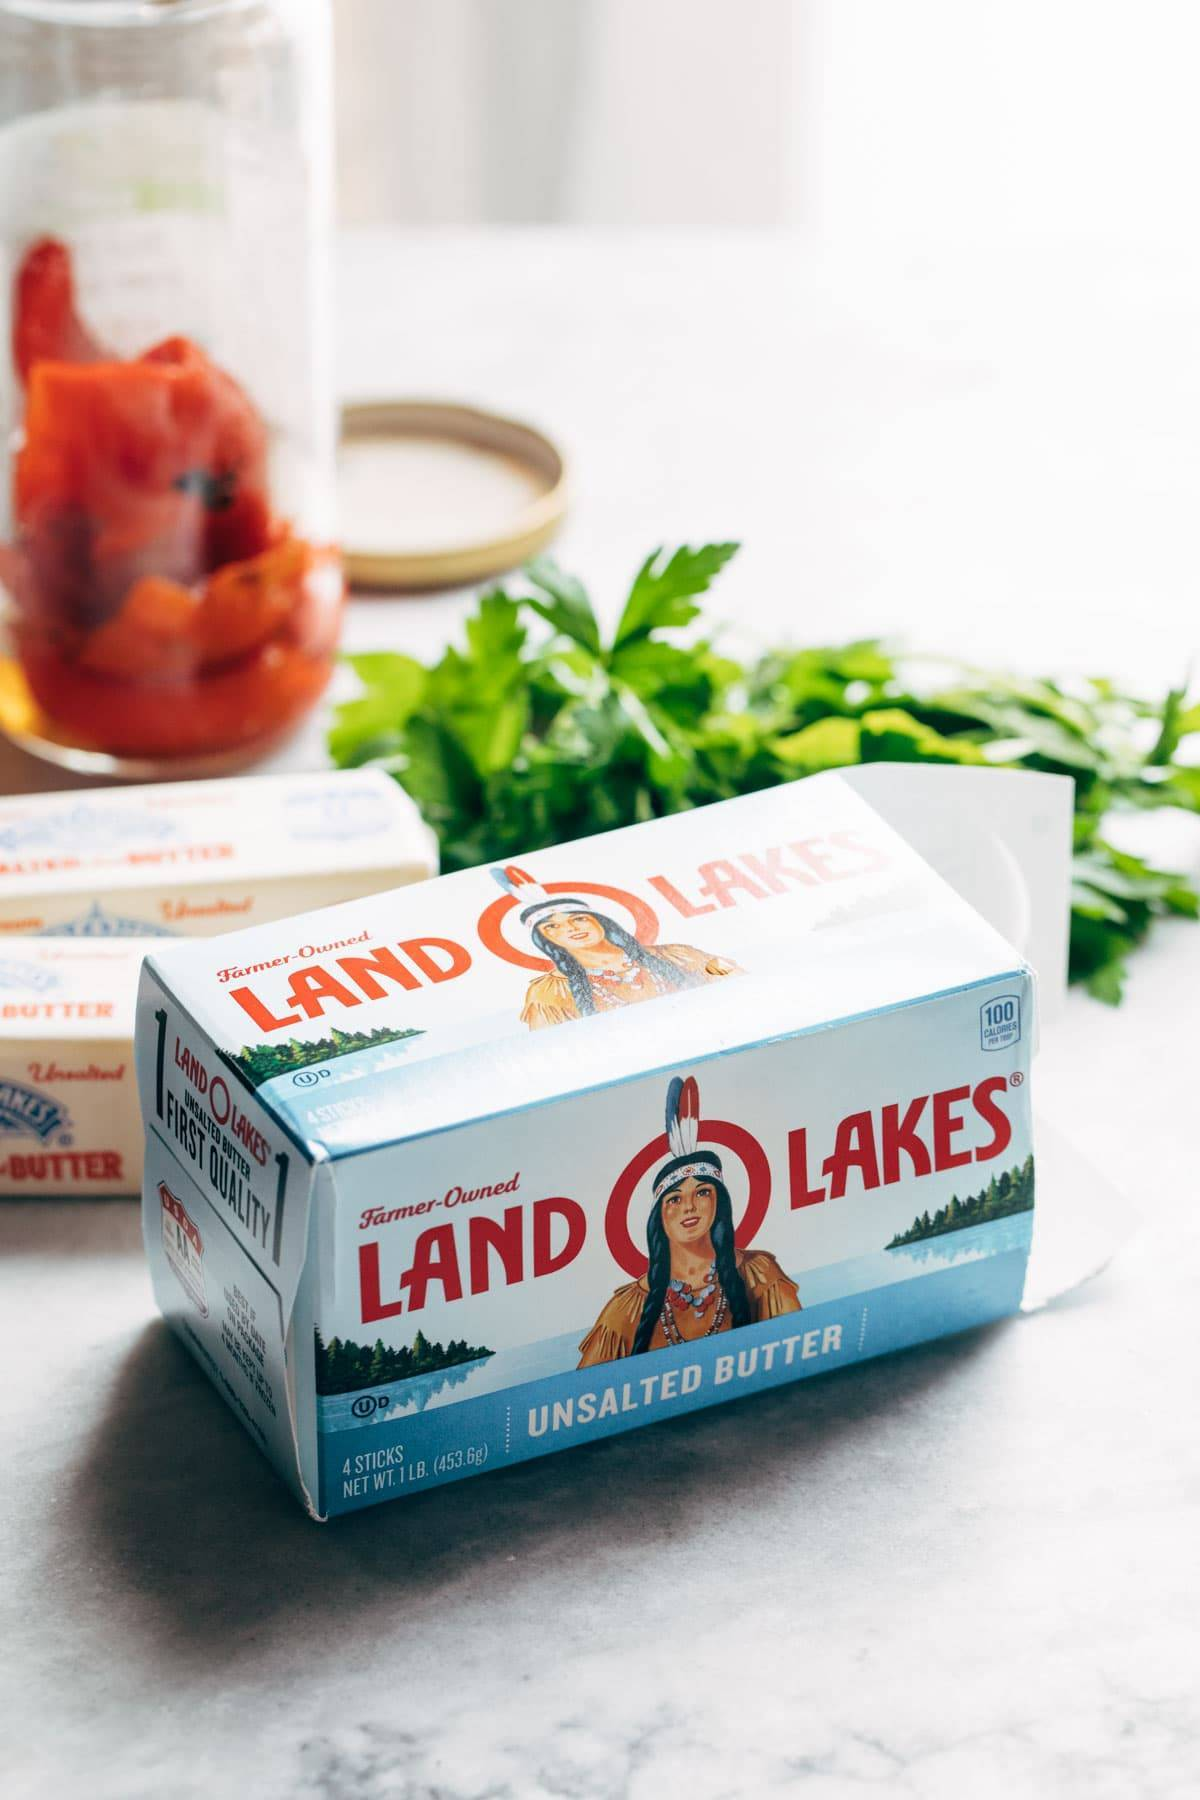 Land O'Lakes unsalted butter.